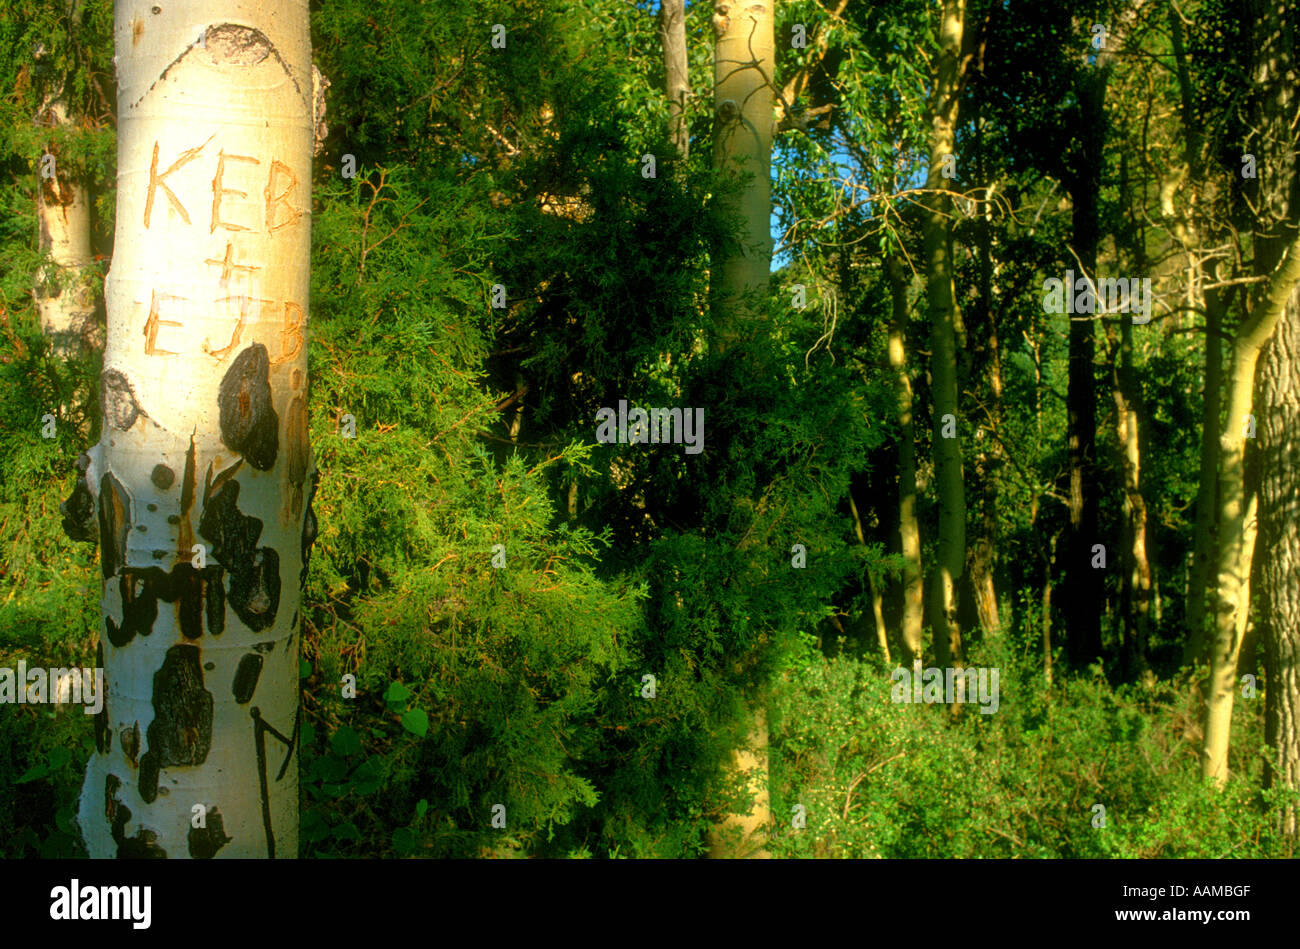 carved grafitti on a tree in a wilderness or park area otherwise unspoiled - Stock Image